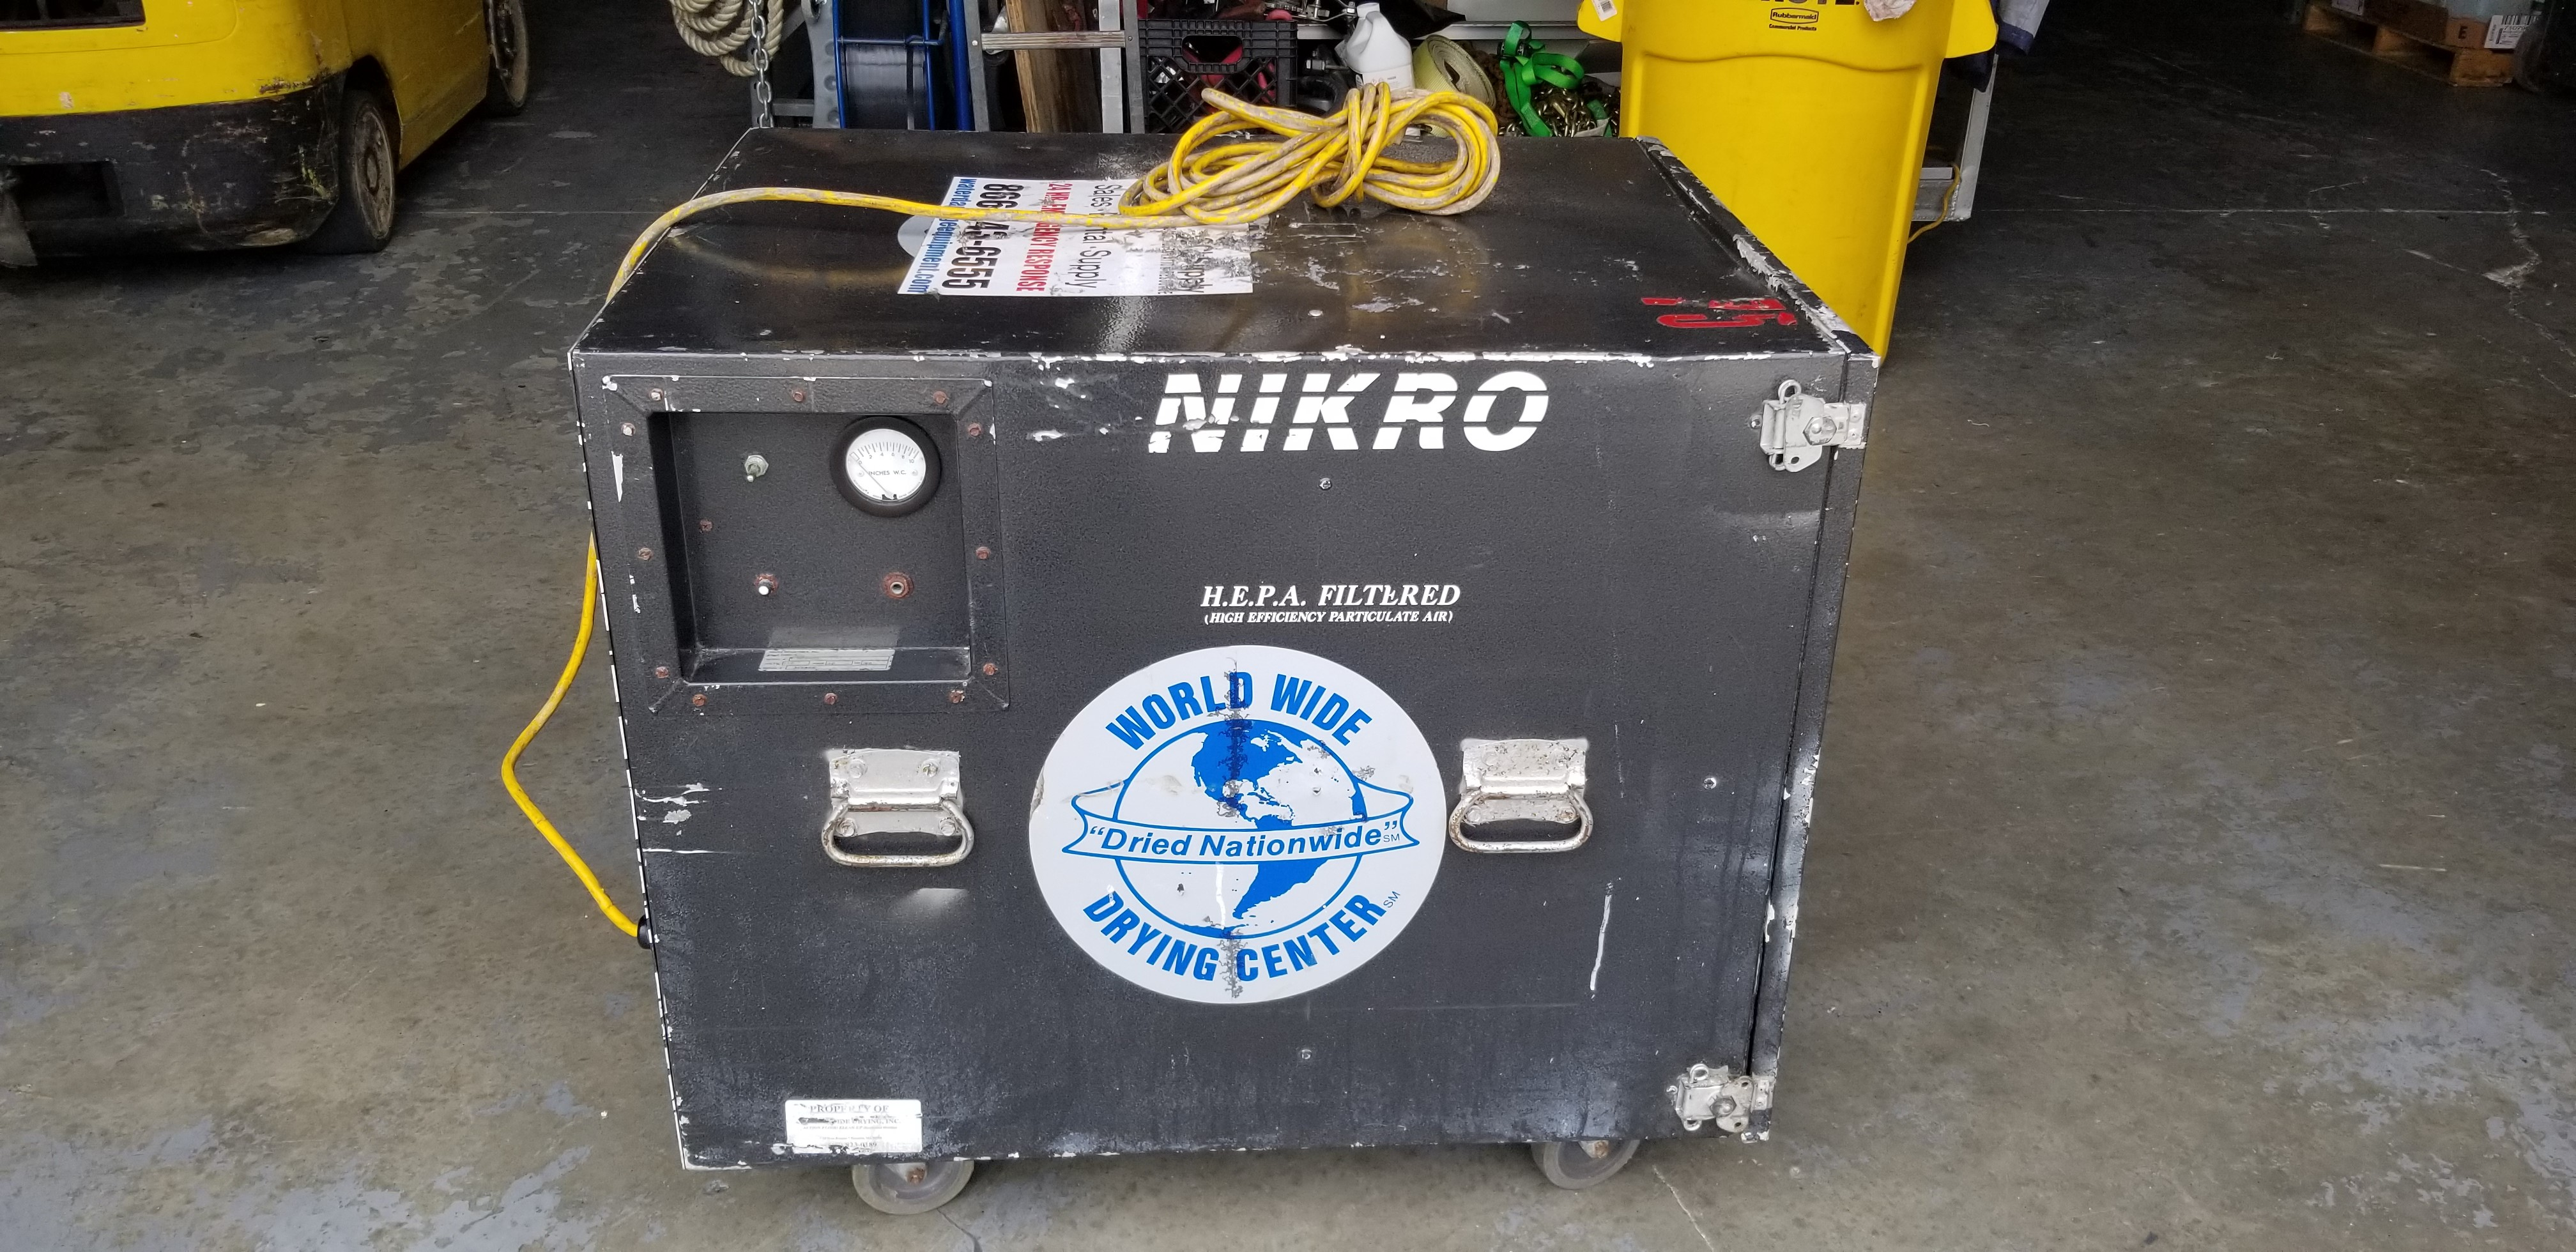 Nikro Air Srubber/ Used/ As is